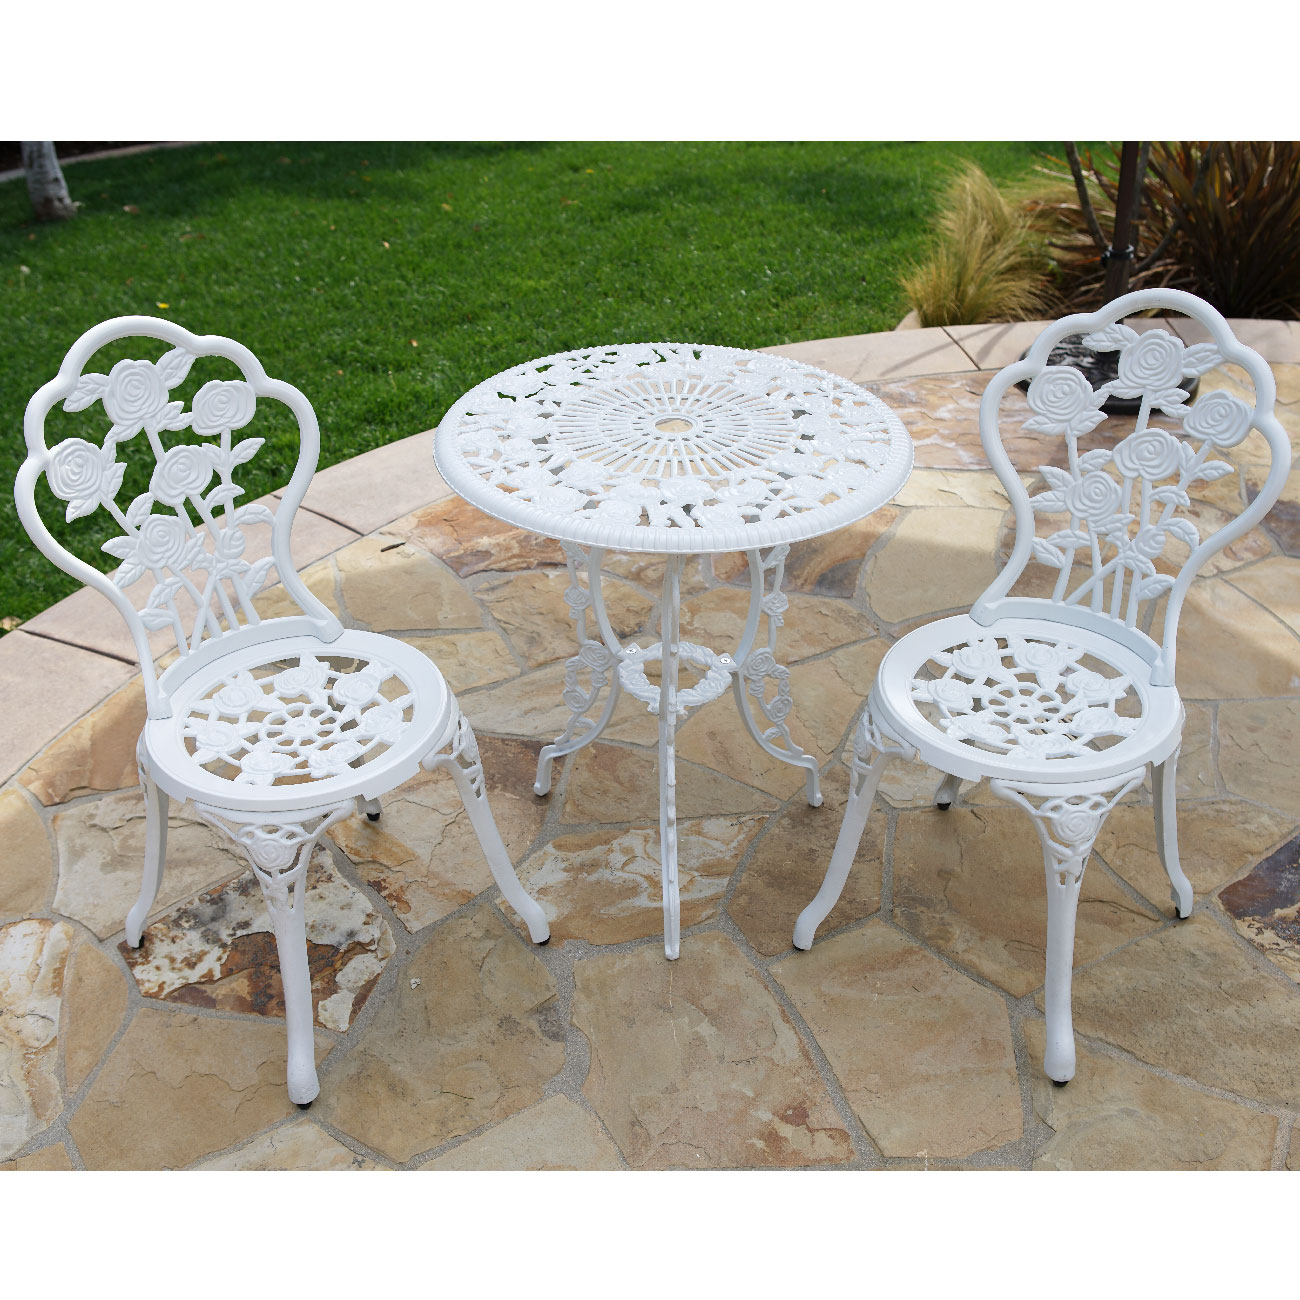 BELLEZZA Patio Furniture Cast Aluminum Tulip Design Bistro Set in Antique White by jet.com